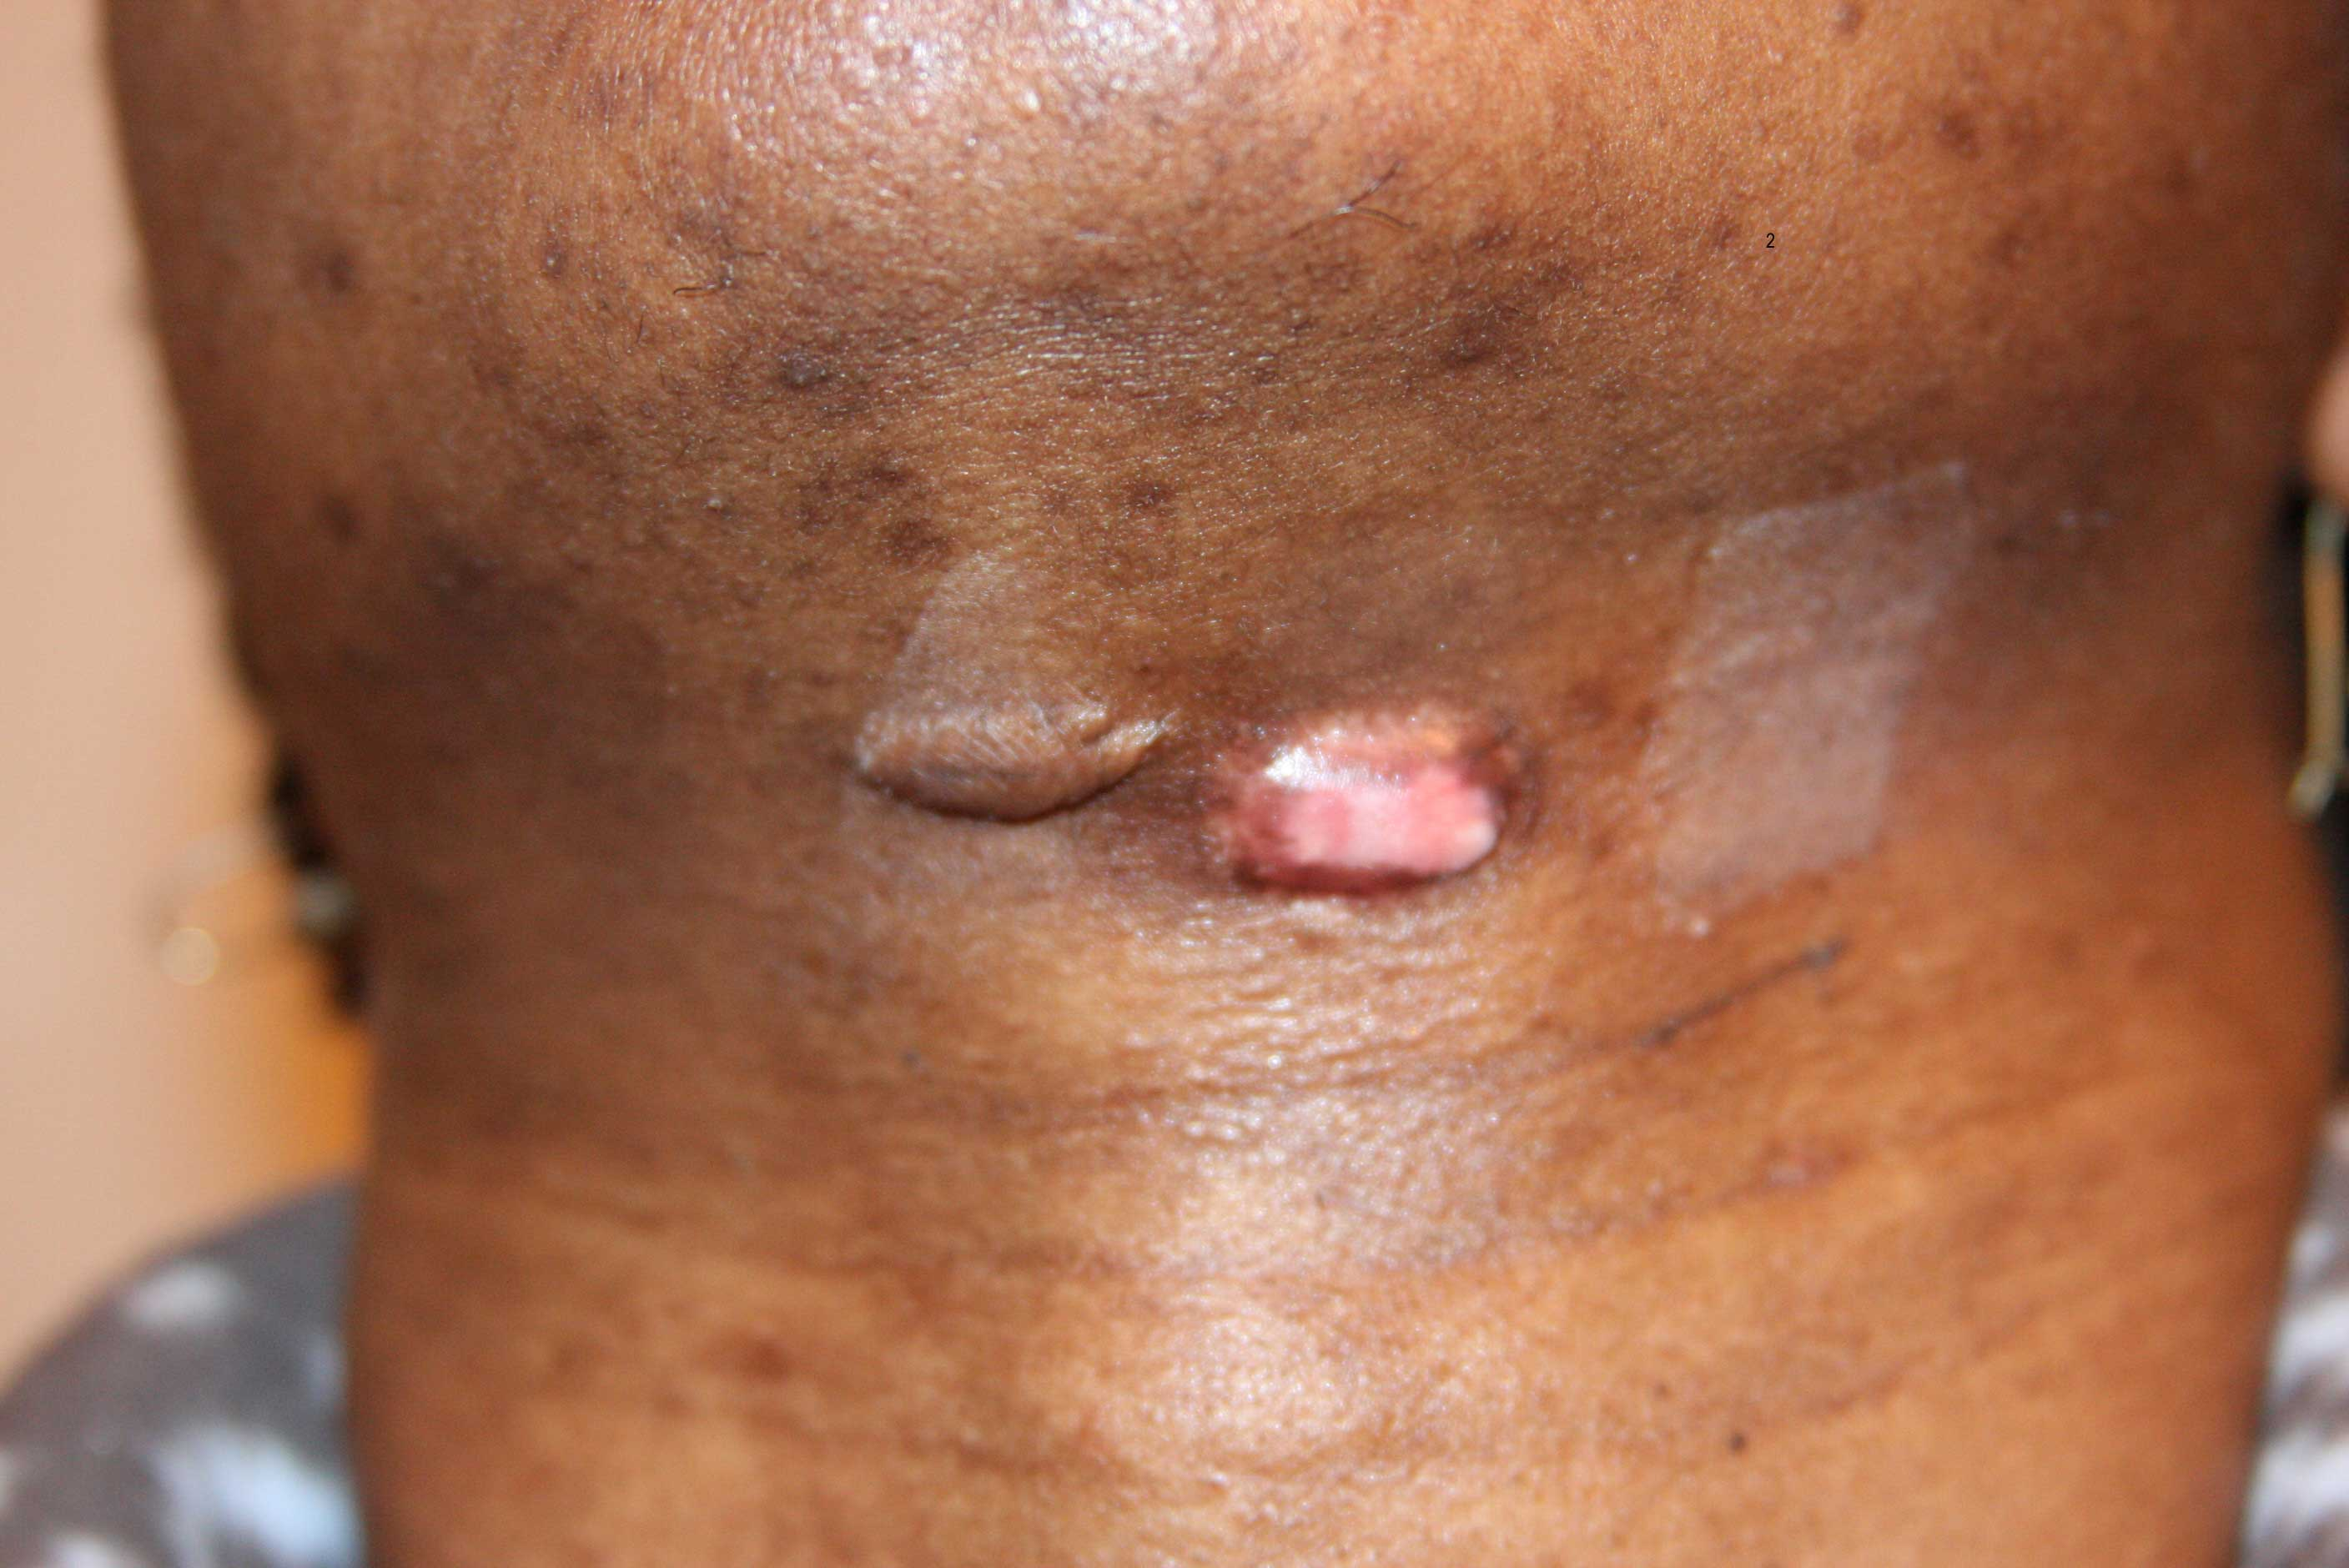 Tumoral Neck Keloid treated with cryotherapy